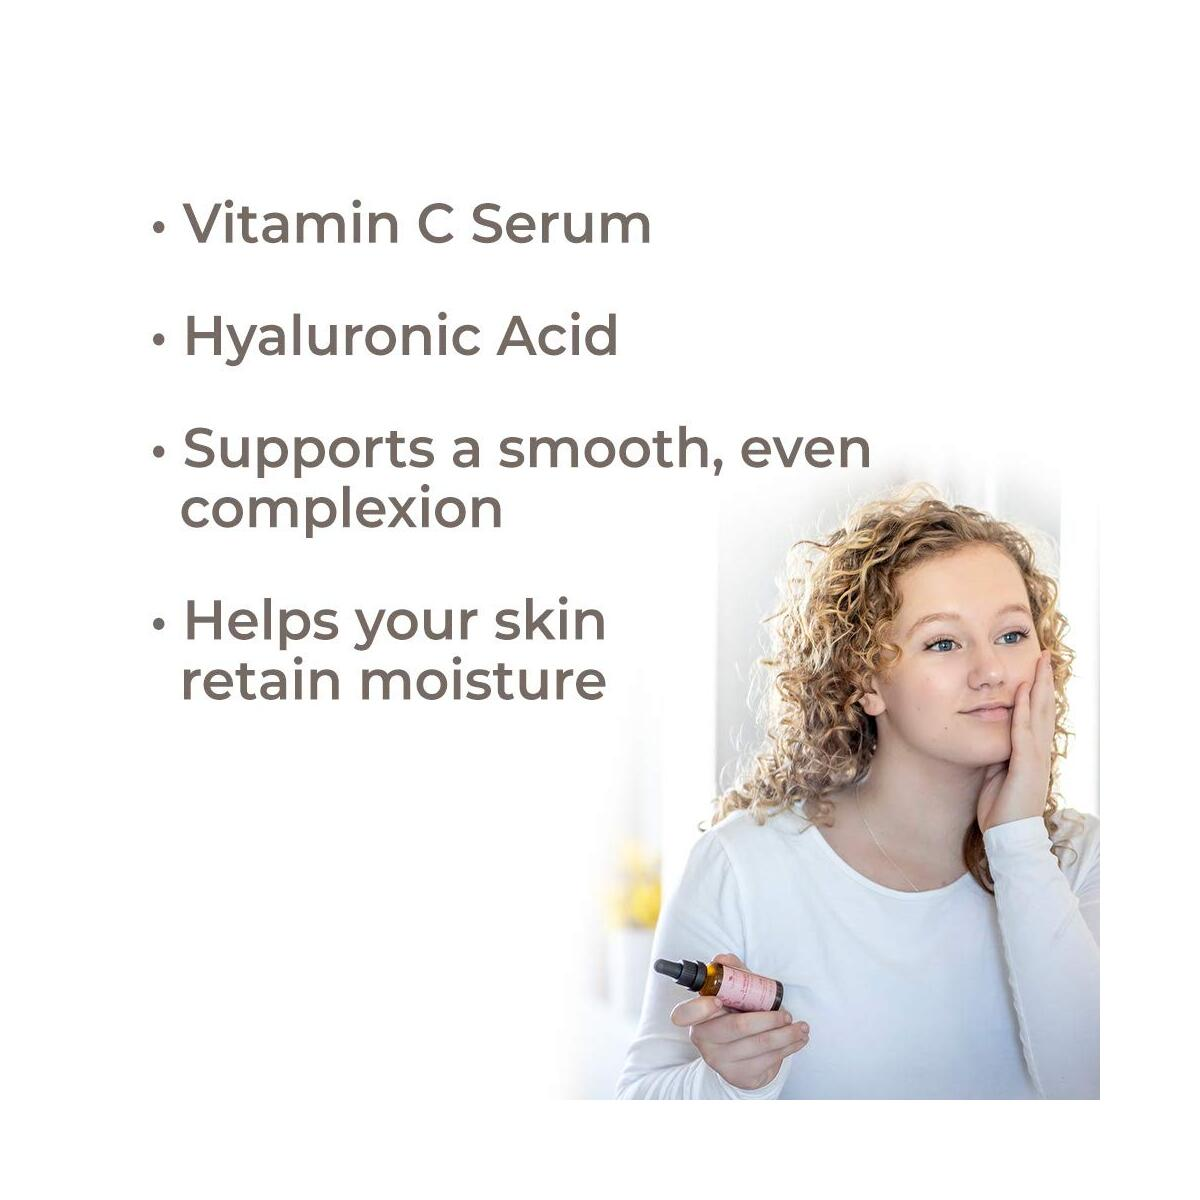 Plant Therapy Facial Serum with Vitamin C & Hyaluronic Acid 1 oz with 30% Hyaluronic Acid, Ferulic Acid, and Vitamin E, Reduces the Appearance of Fine Lines & Wrinkles